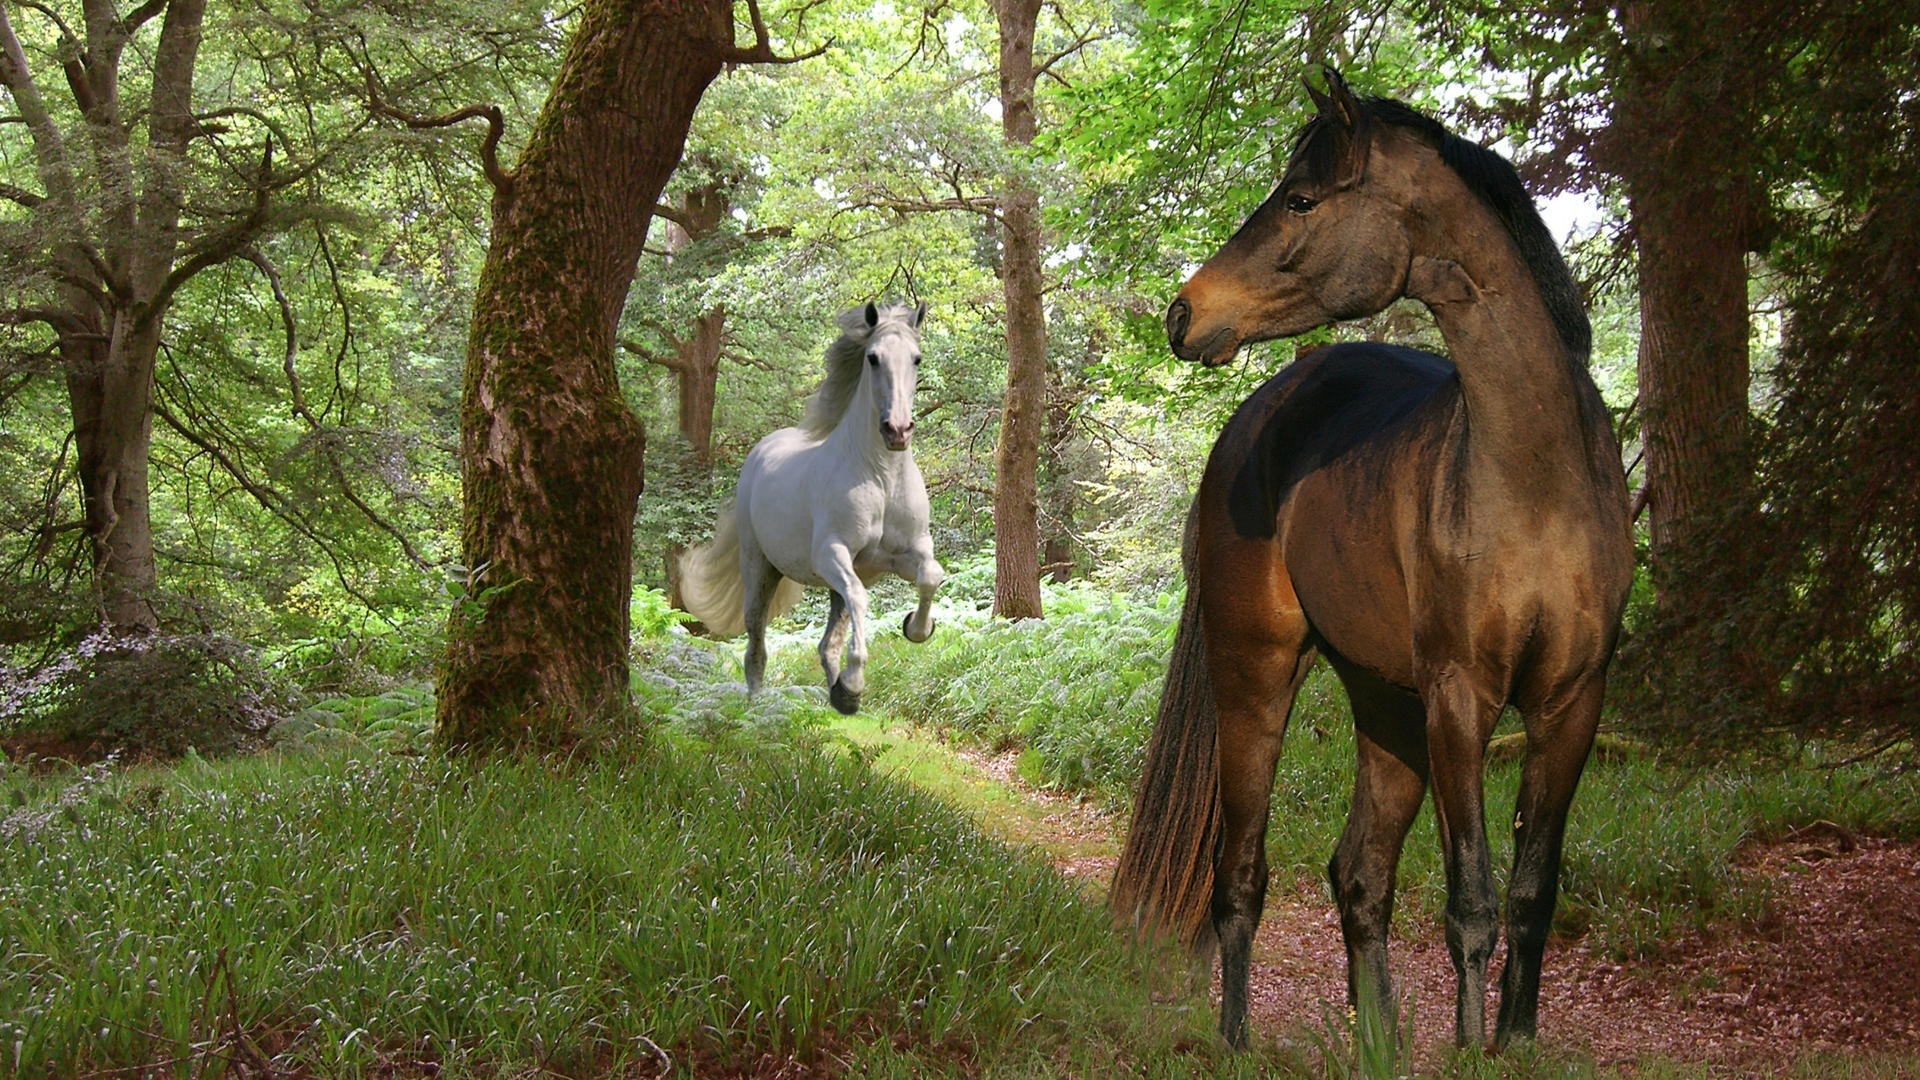 48396 download wallpaper Horses, Animals screensavers and pictures for free